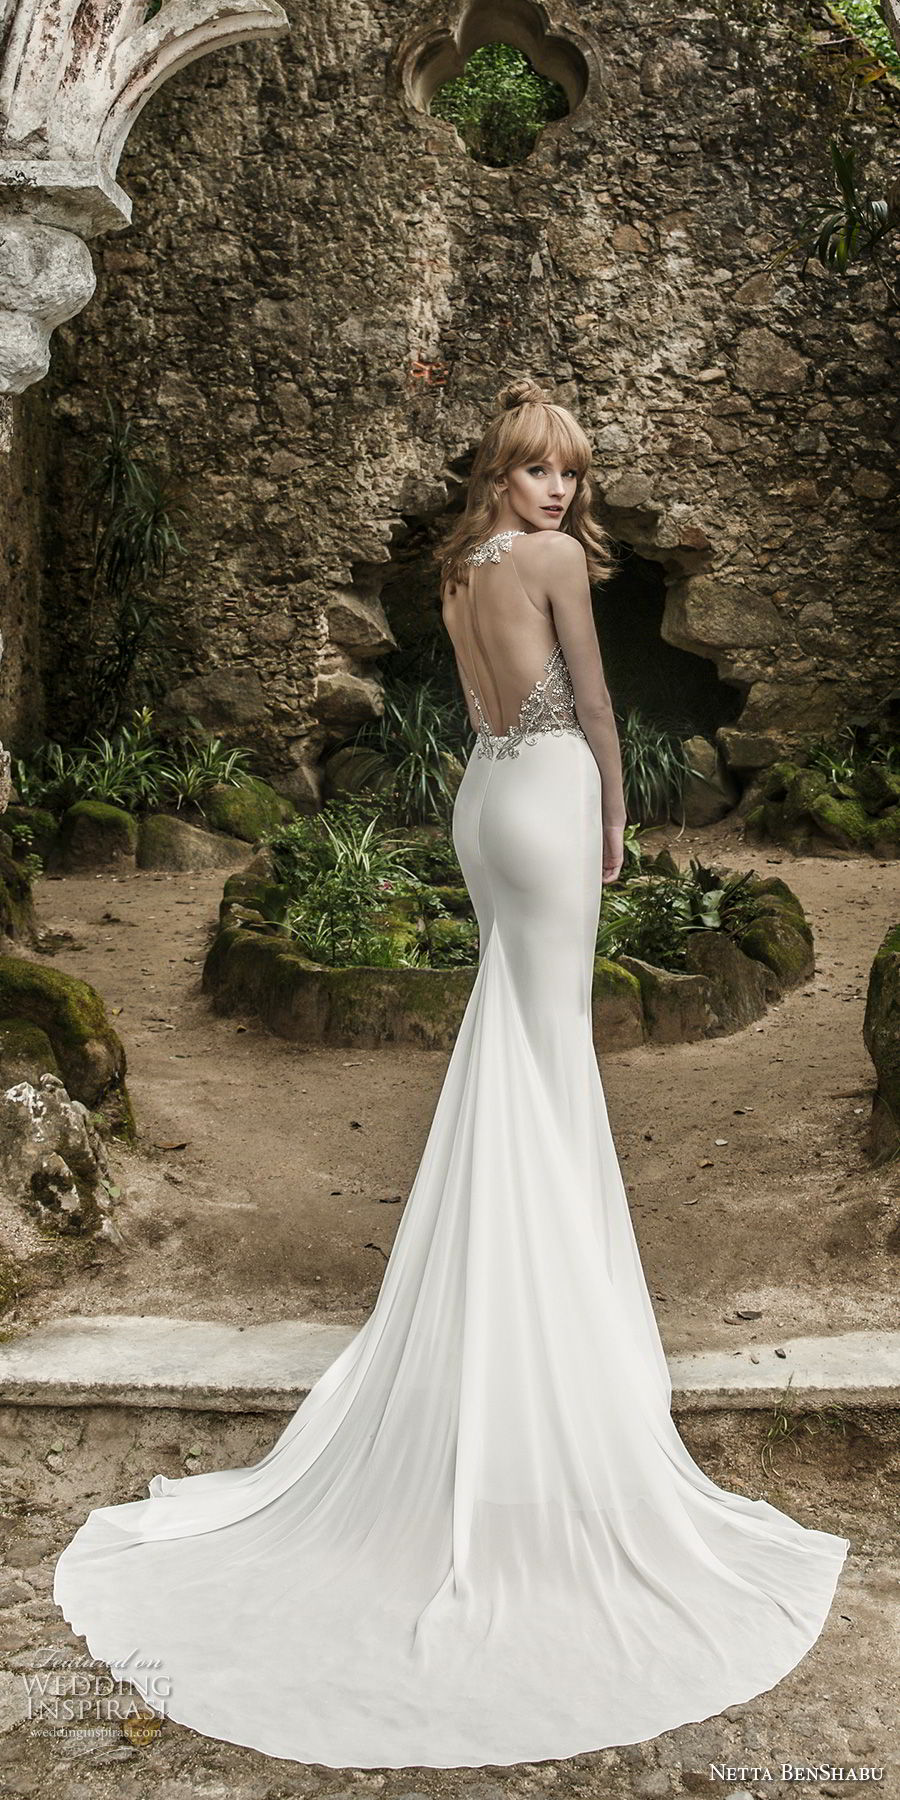 netta benshabu 2017 bridal sleeveless halter neck heavily embellished beaded bodice elegant glamorous sheath wedding dress keyhole open back chapel train (15) bv